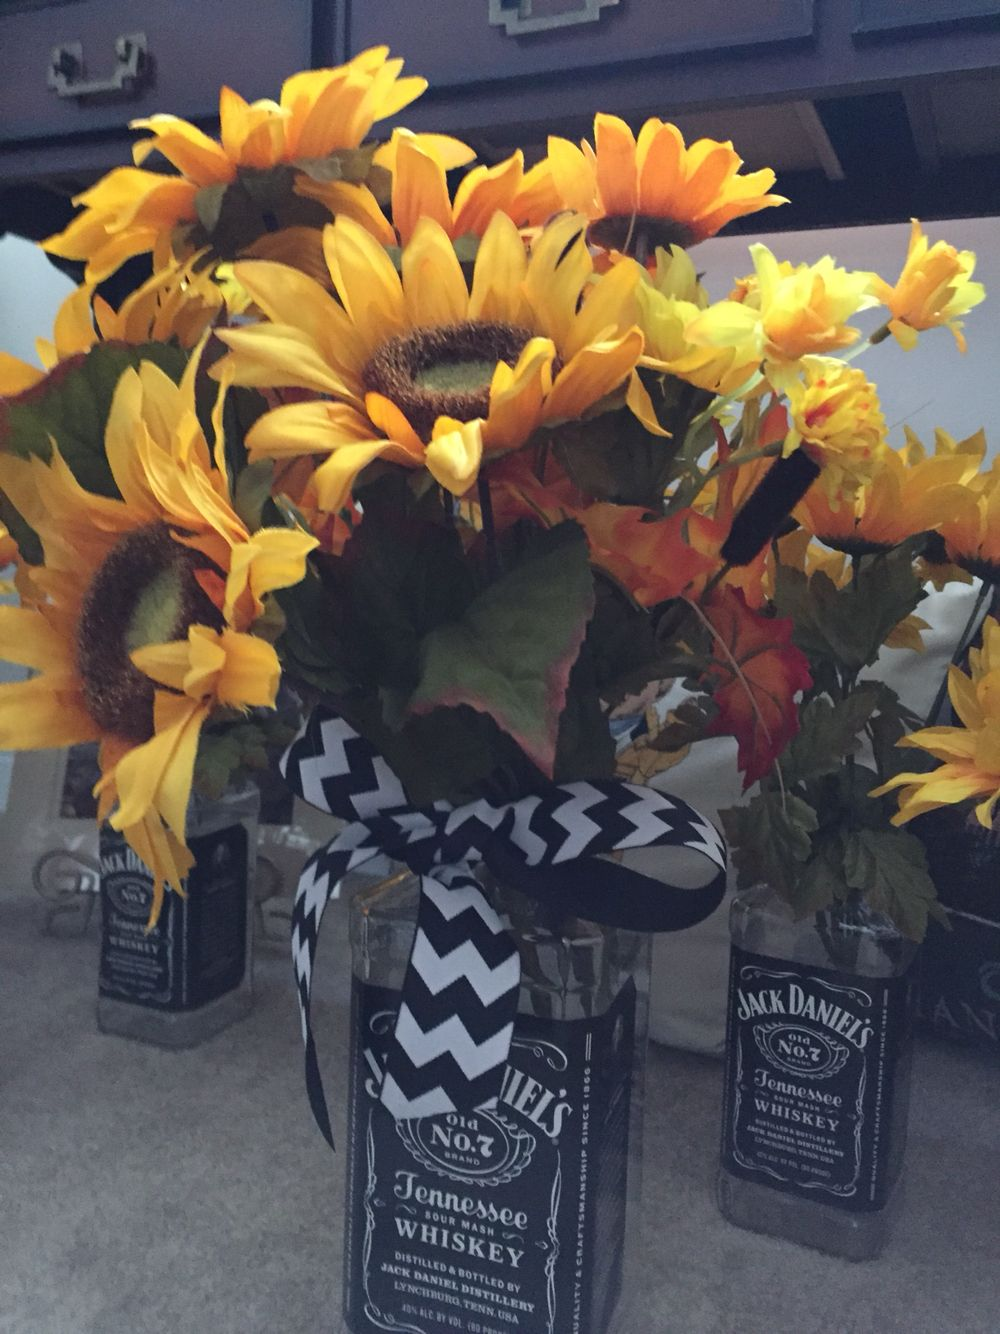 Large jack daniels bottle used for a centerpiece with